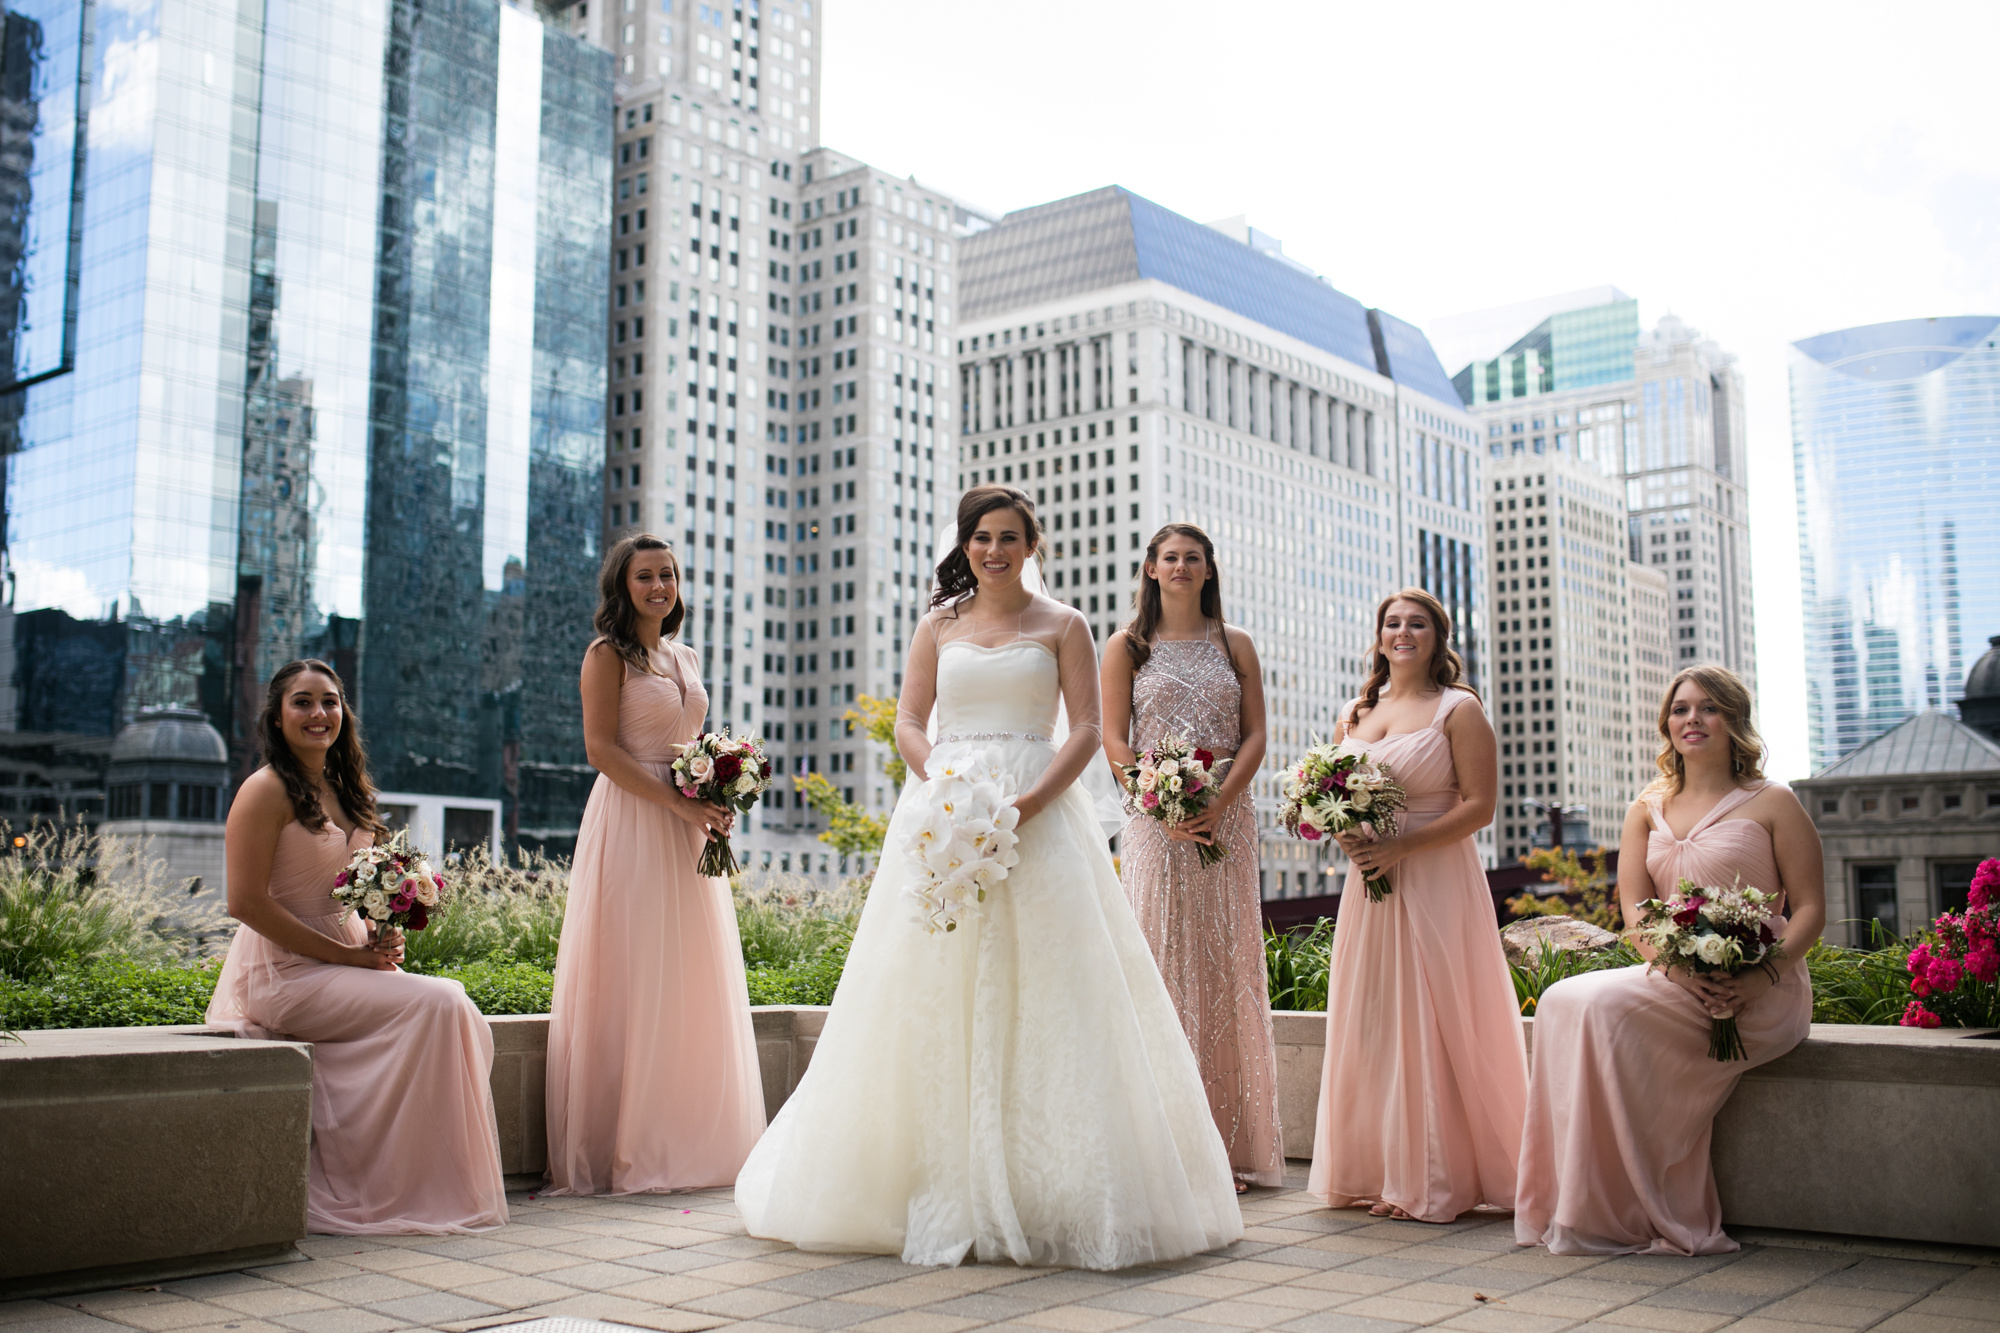 Portrait of bride and bridesmaids against Chicago skyline.